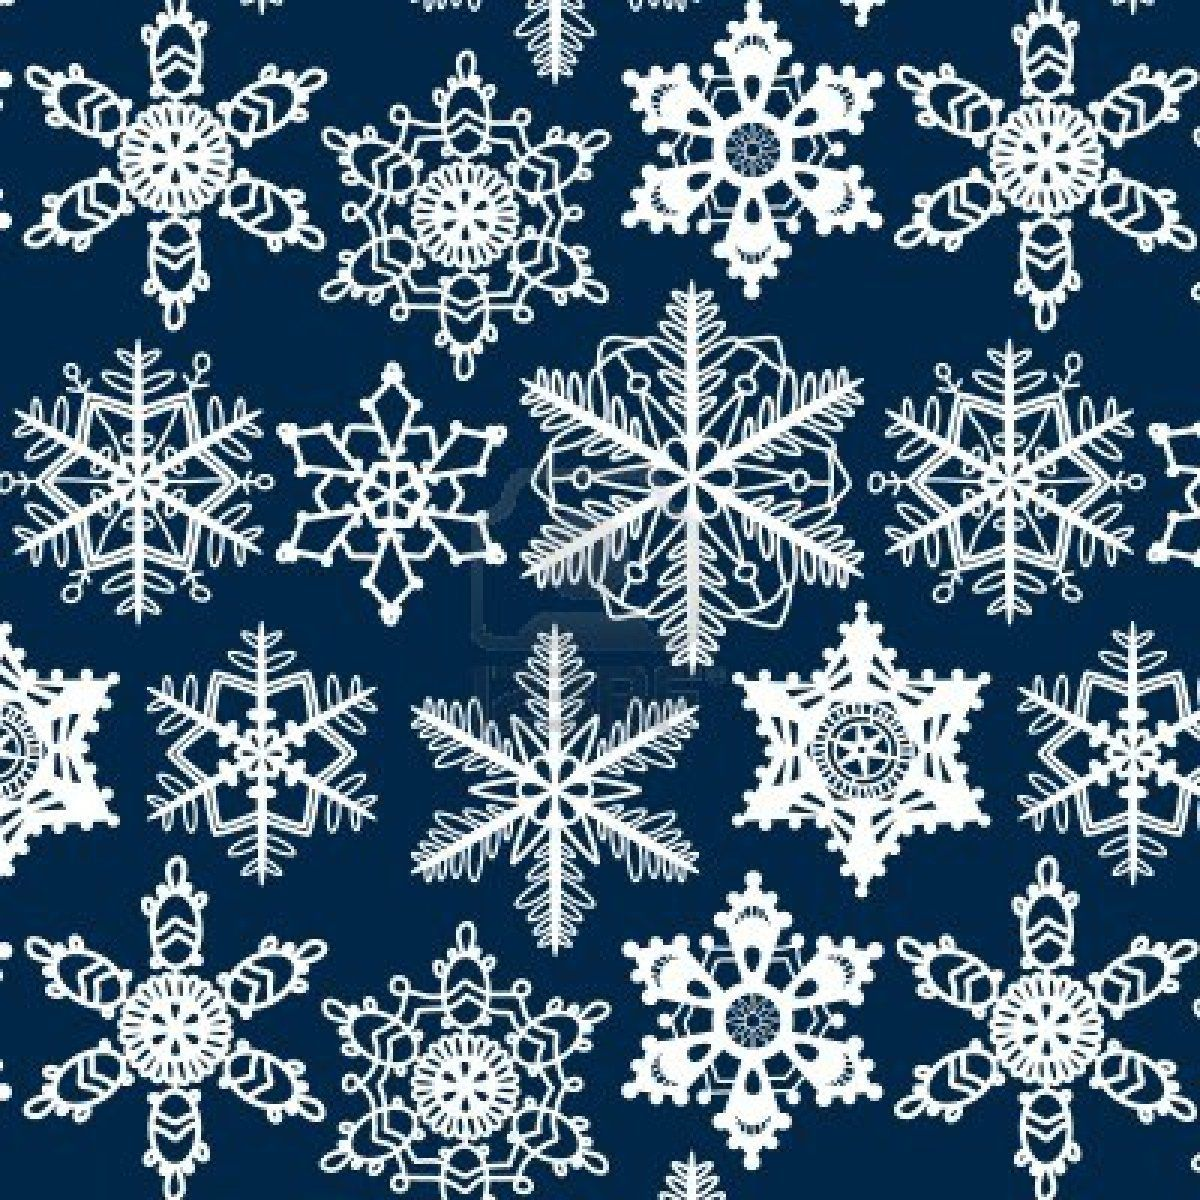 Crochet Snowflakes For Beginners myideasbedroom.com